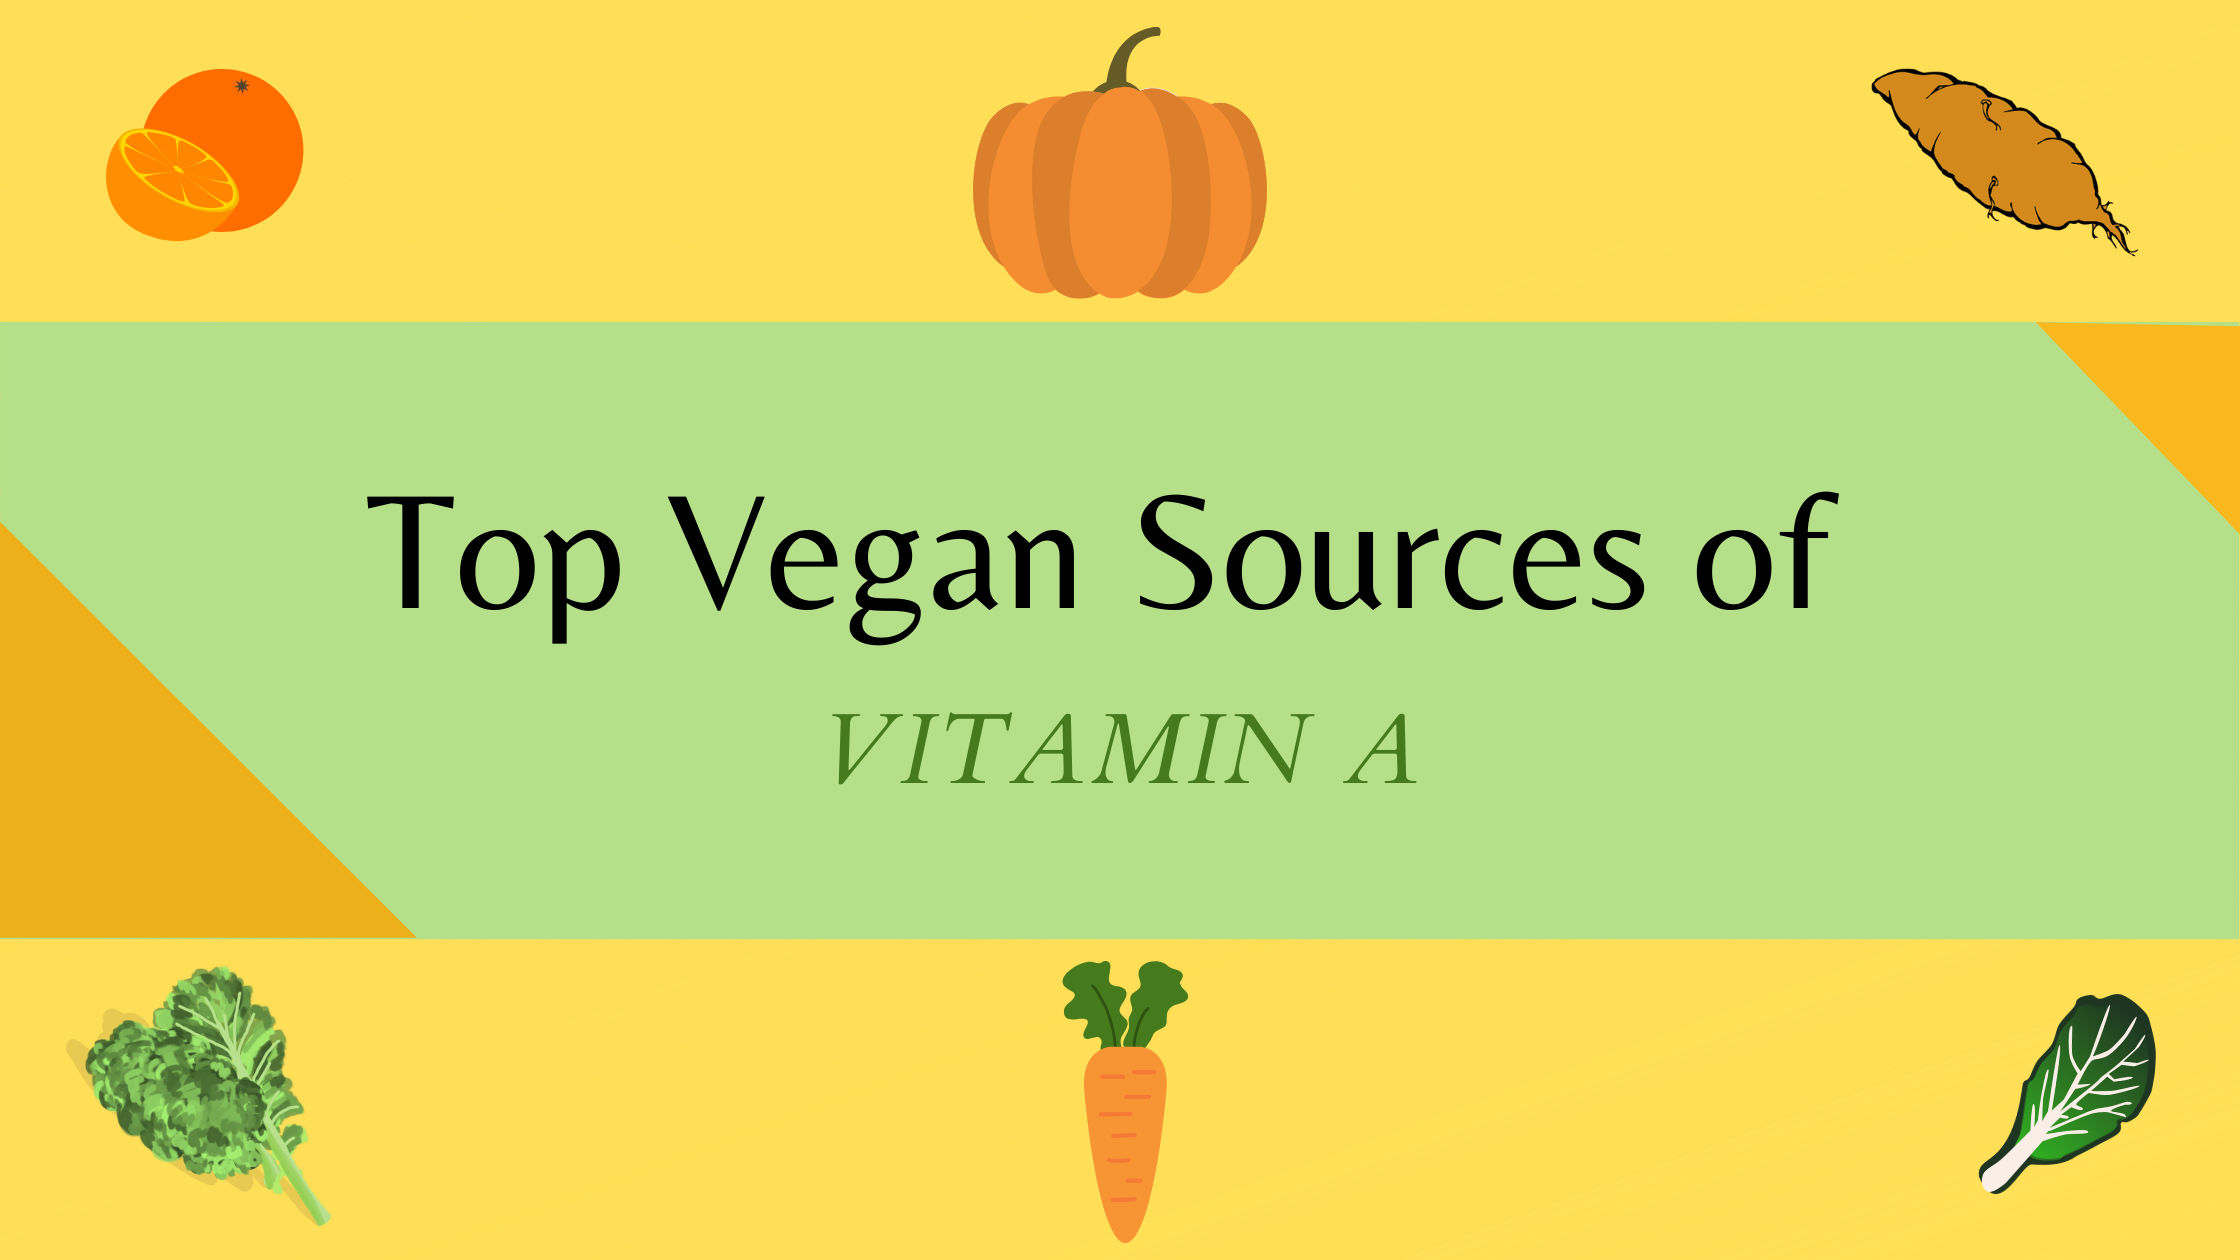 Vegan food sources rich in vitamin a